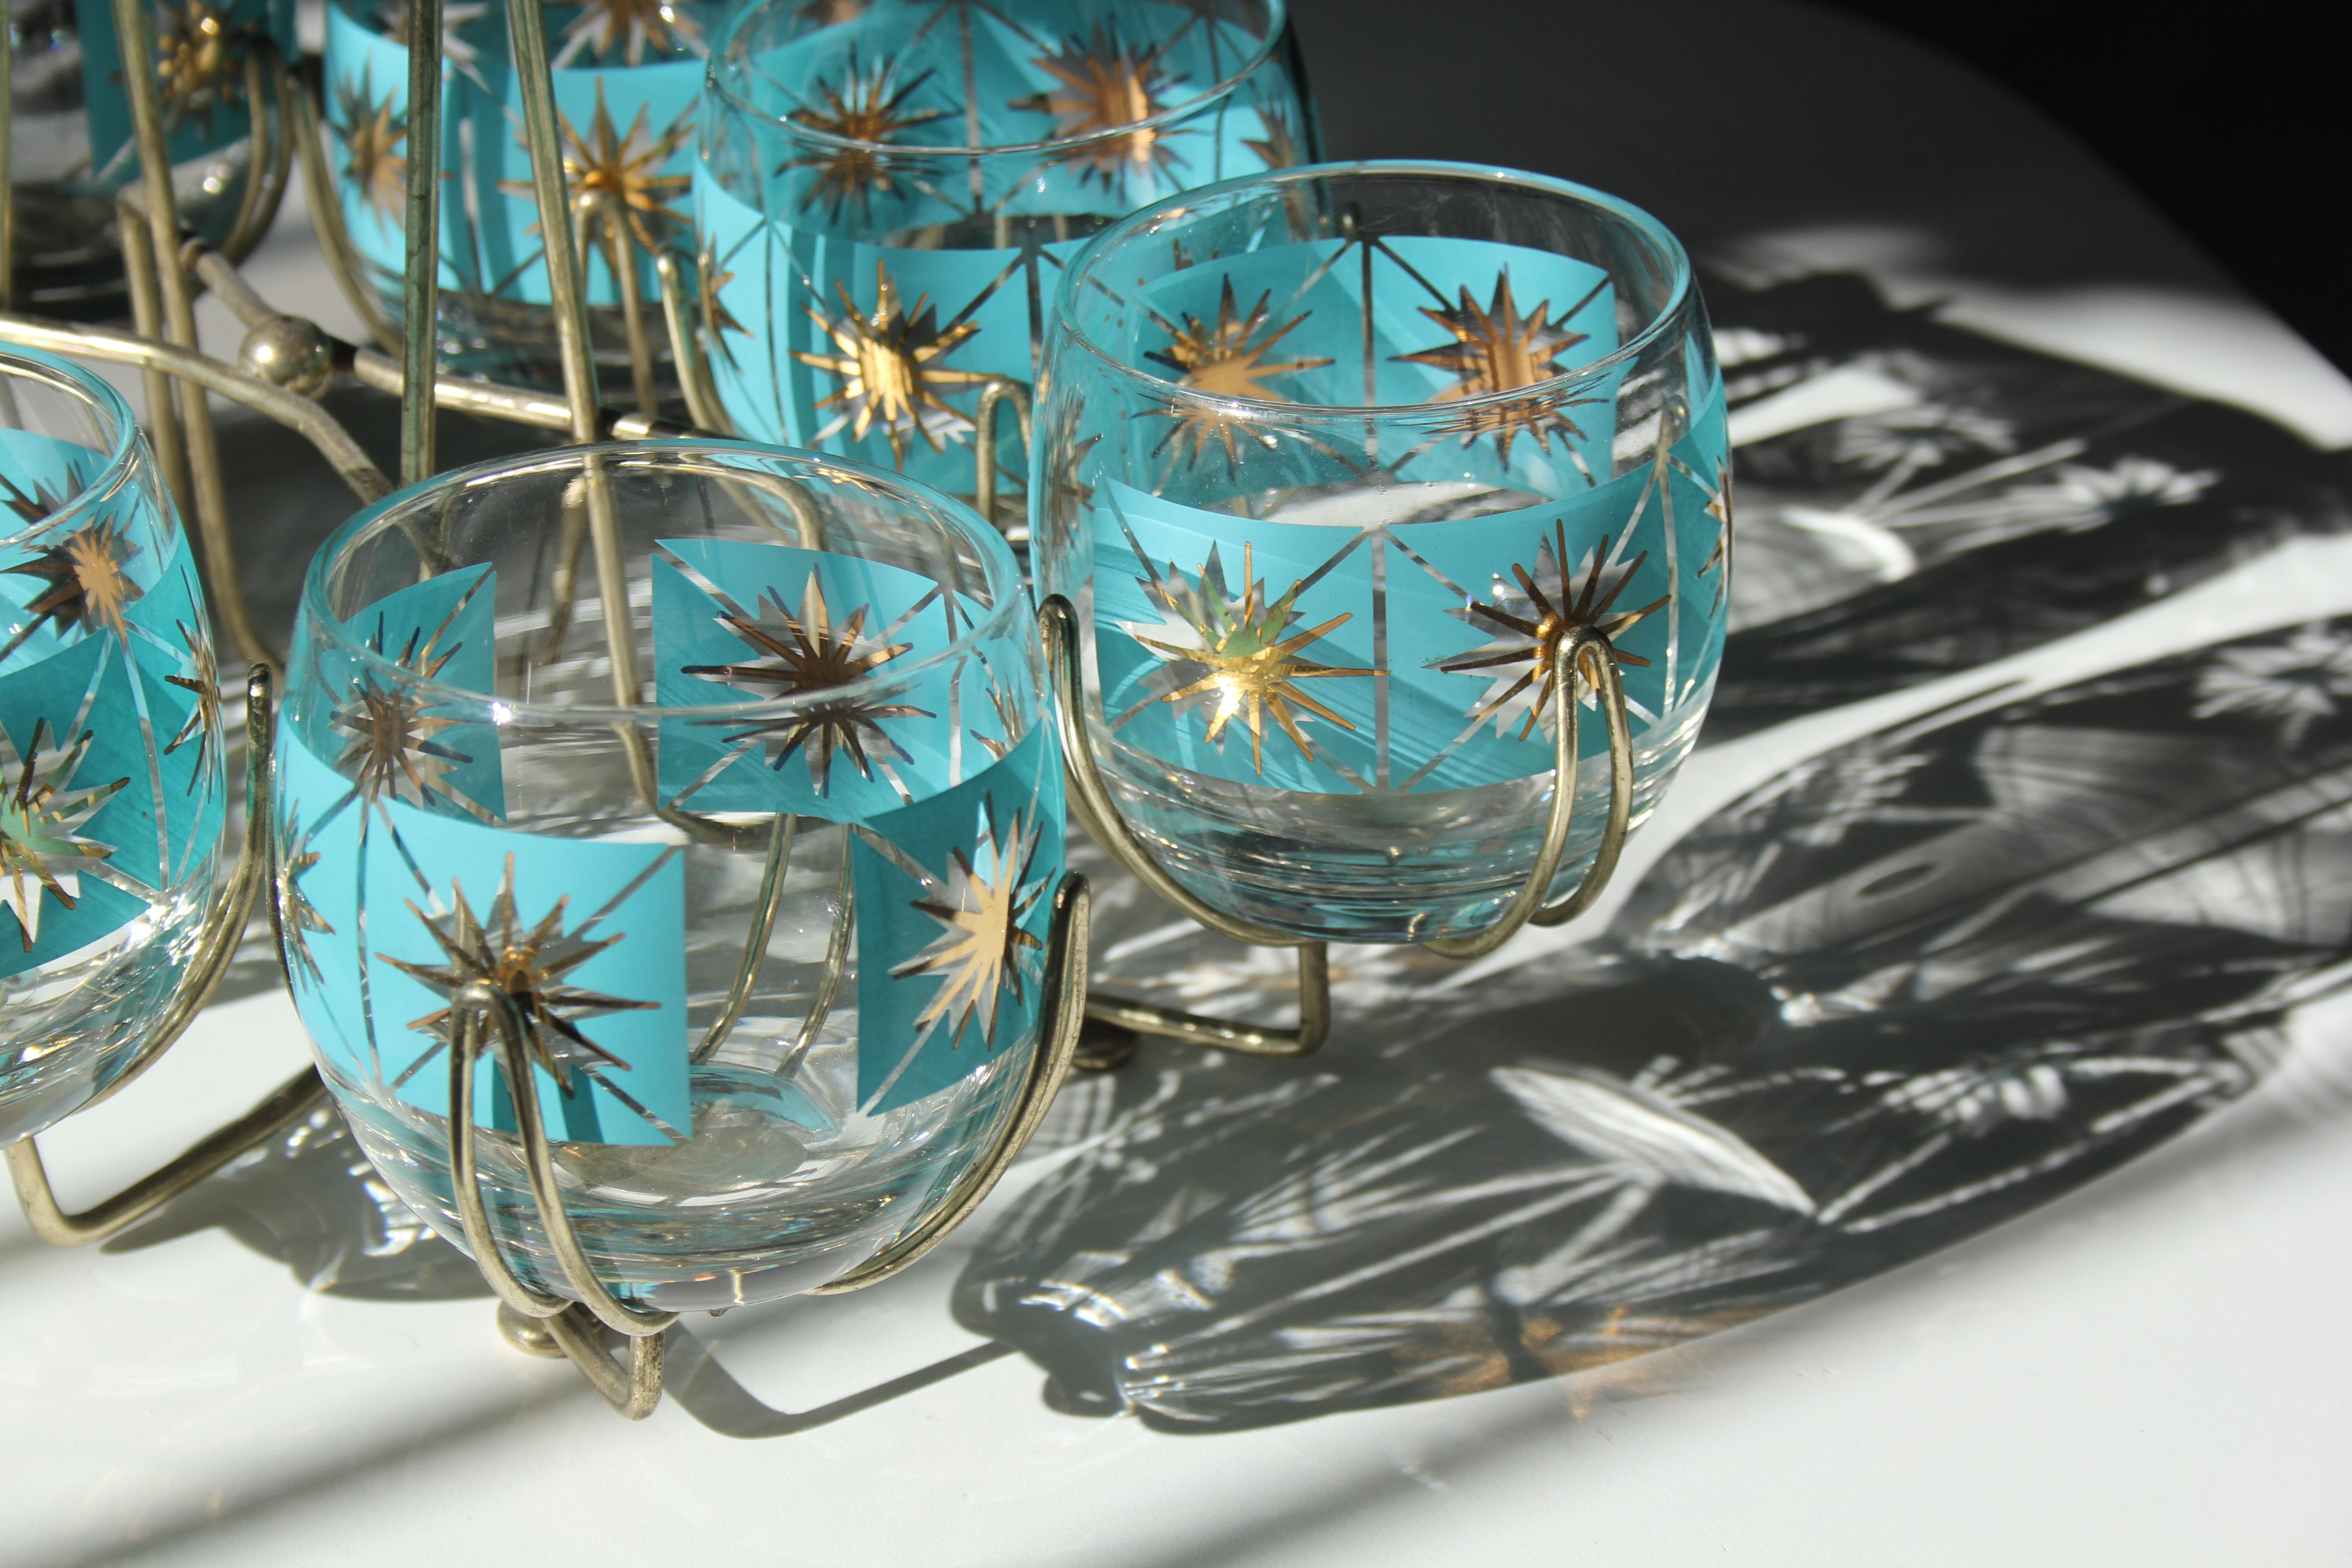 Vintage turquoise blue and gold star burst glass barware